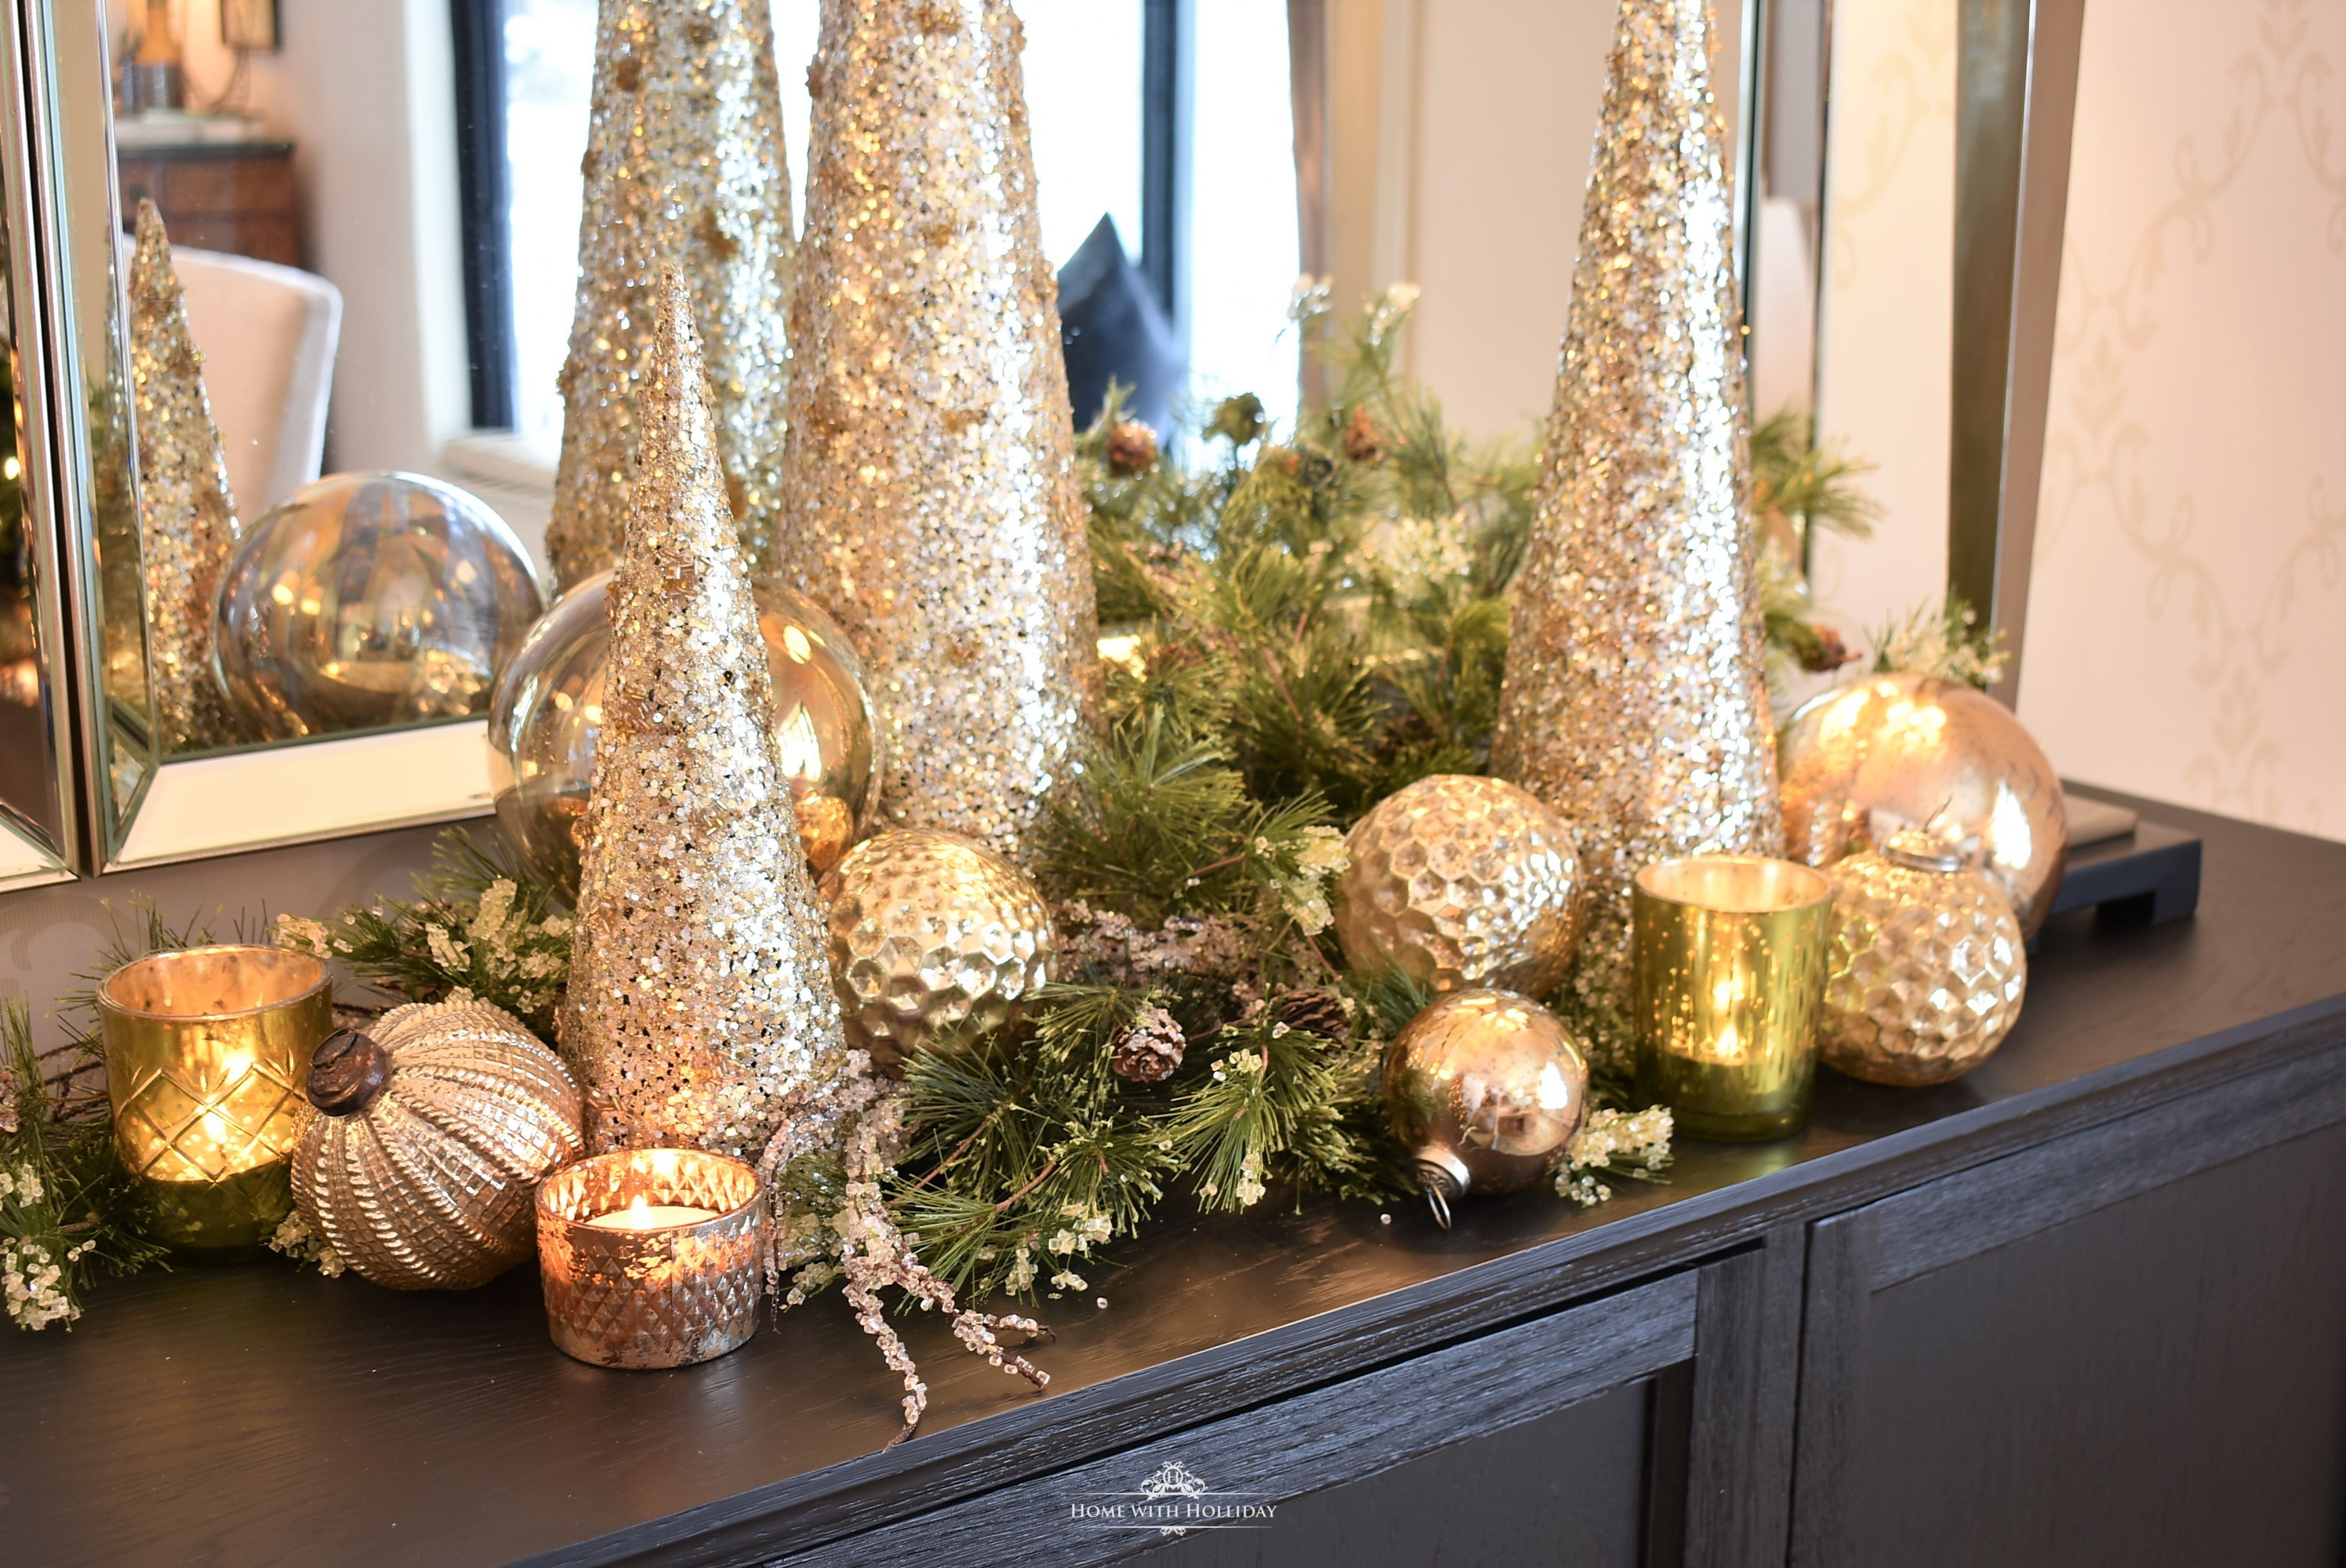 Silver and Gold Glam Christmas Centerpiece with gold cone trees and gold ornament balls